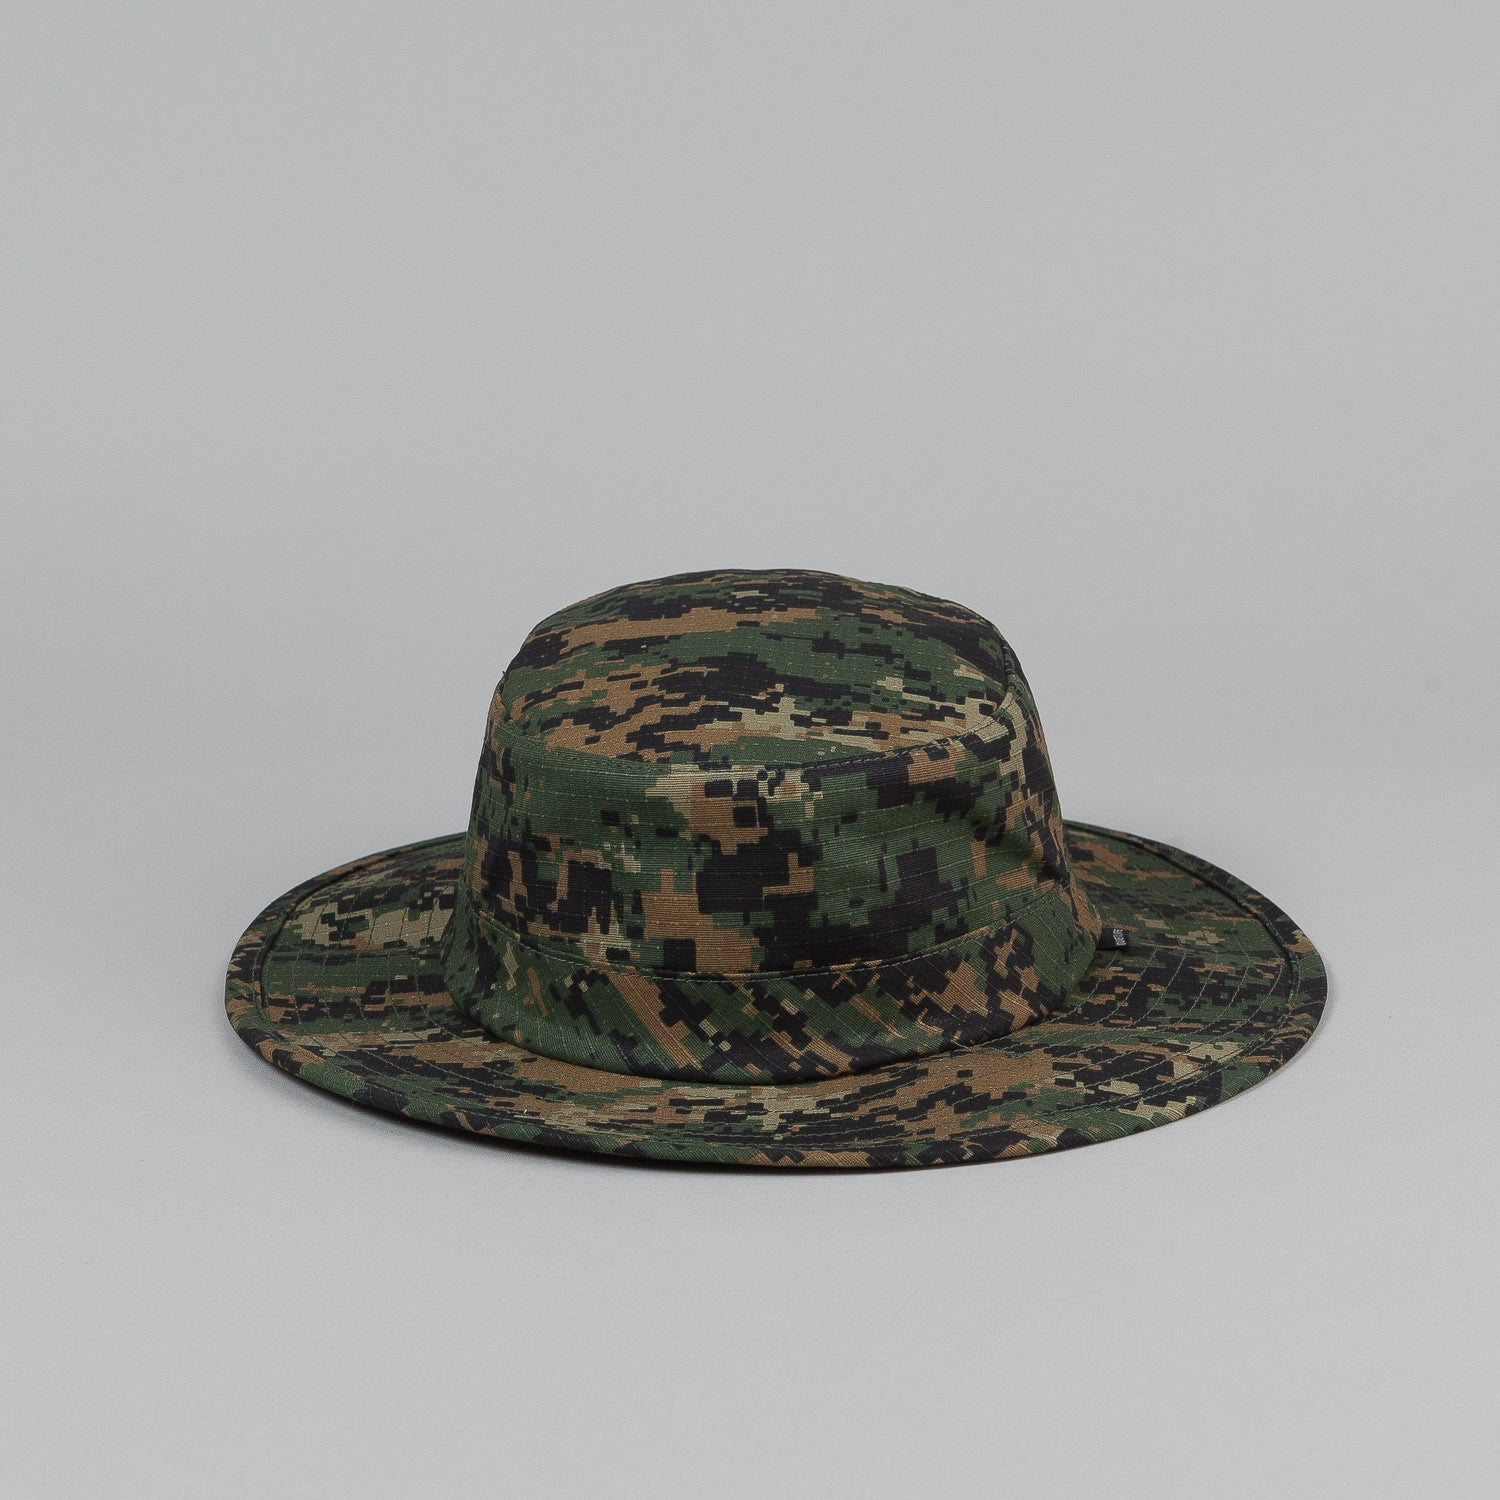 The Quiet Life Swamp Sun Hat - Camo